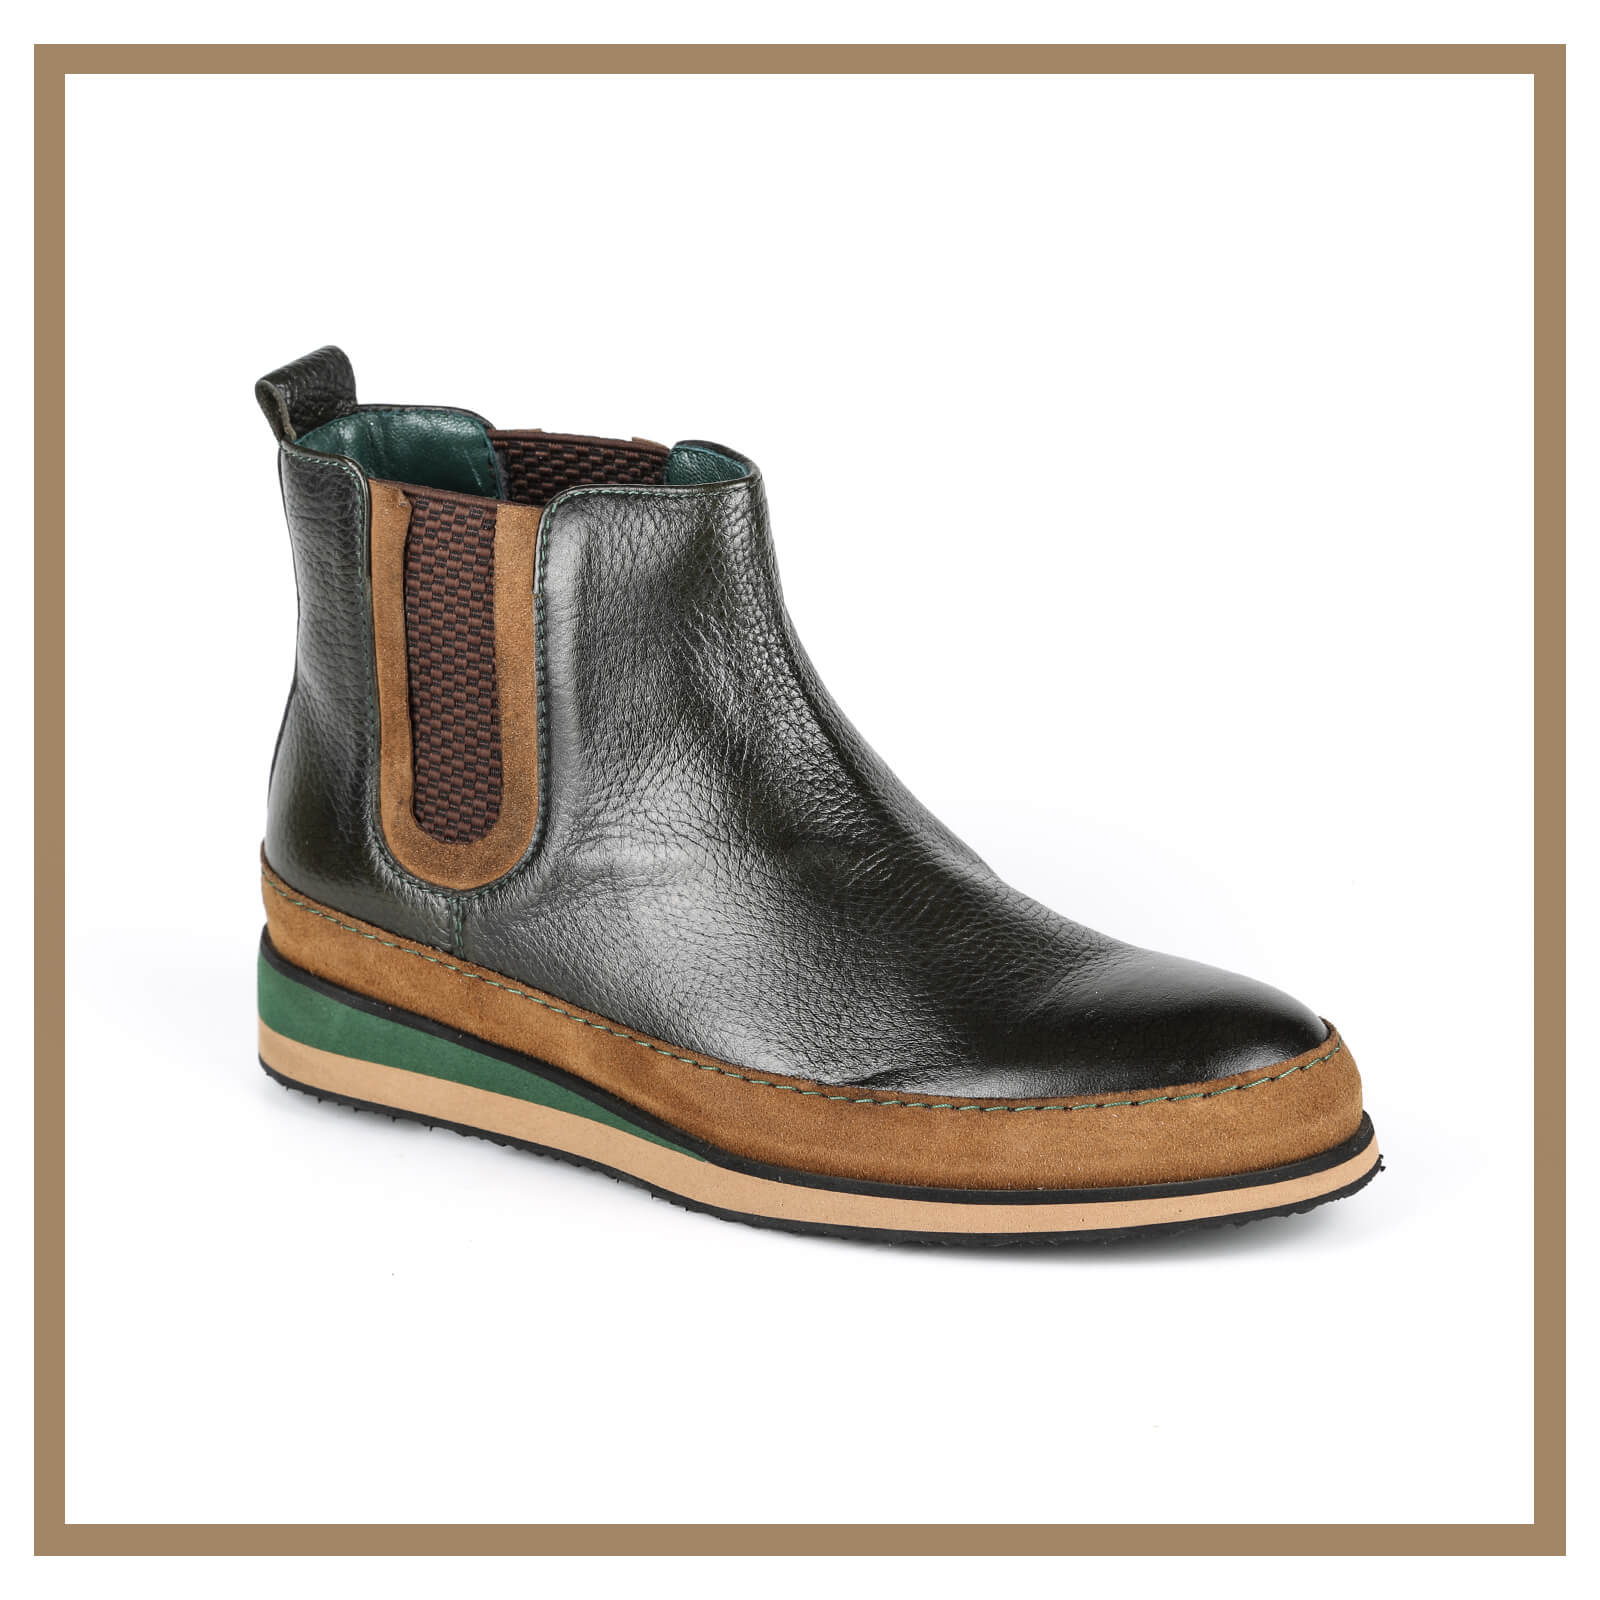 Leather Man Boots 007